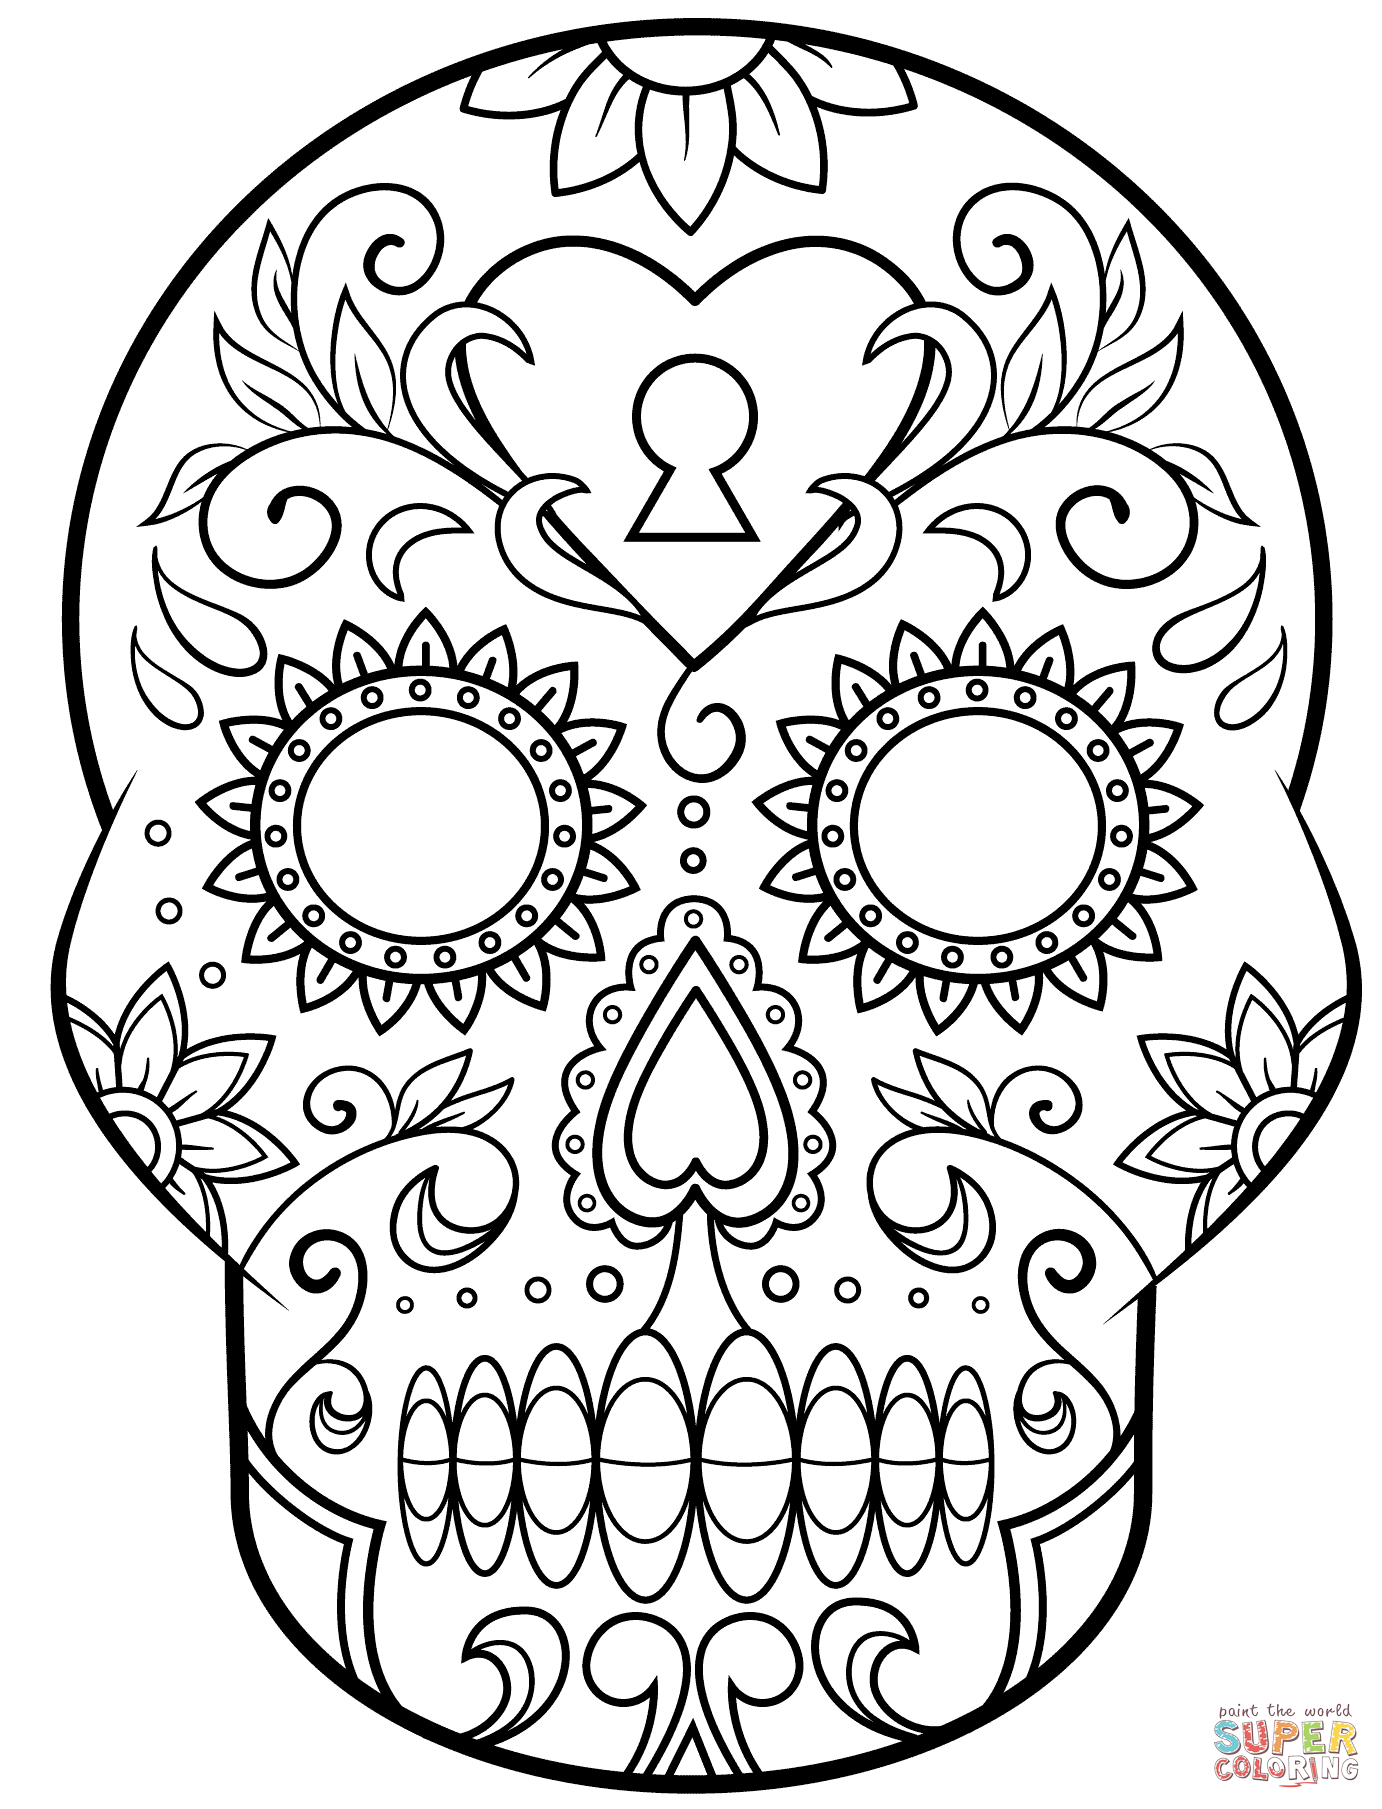 day of the dead skull coloring page free printable day of the dead coloring pages best skull dead coloring the day of page